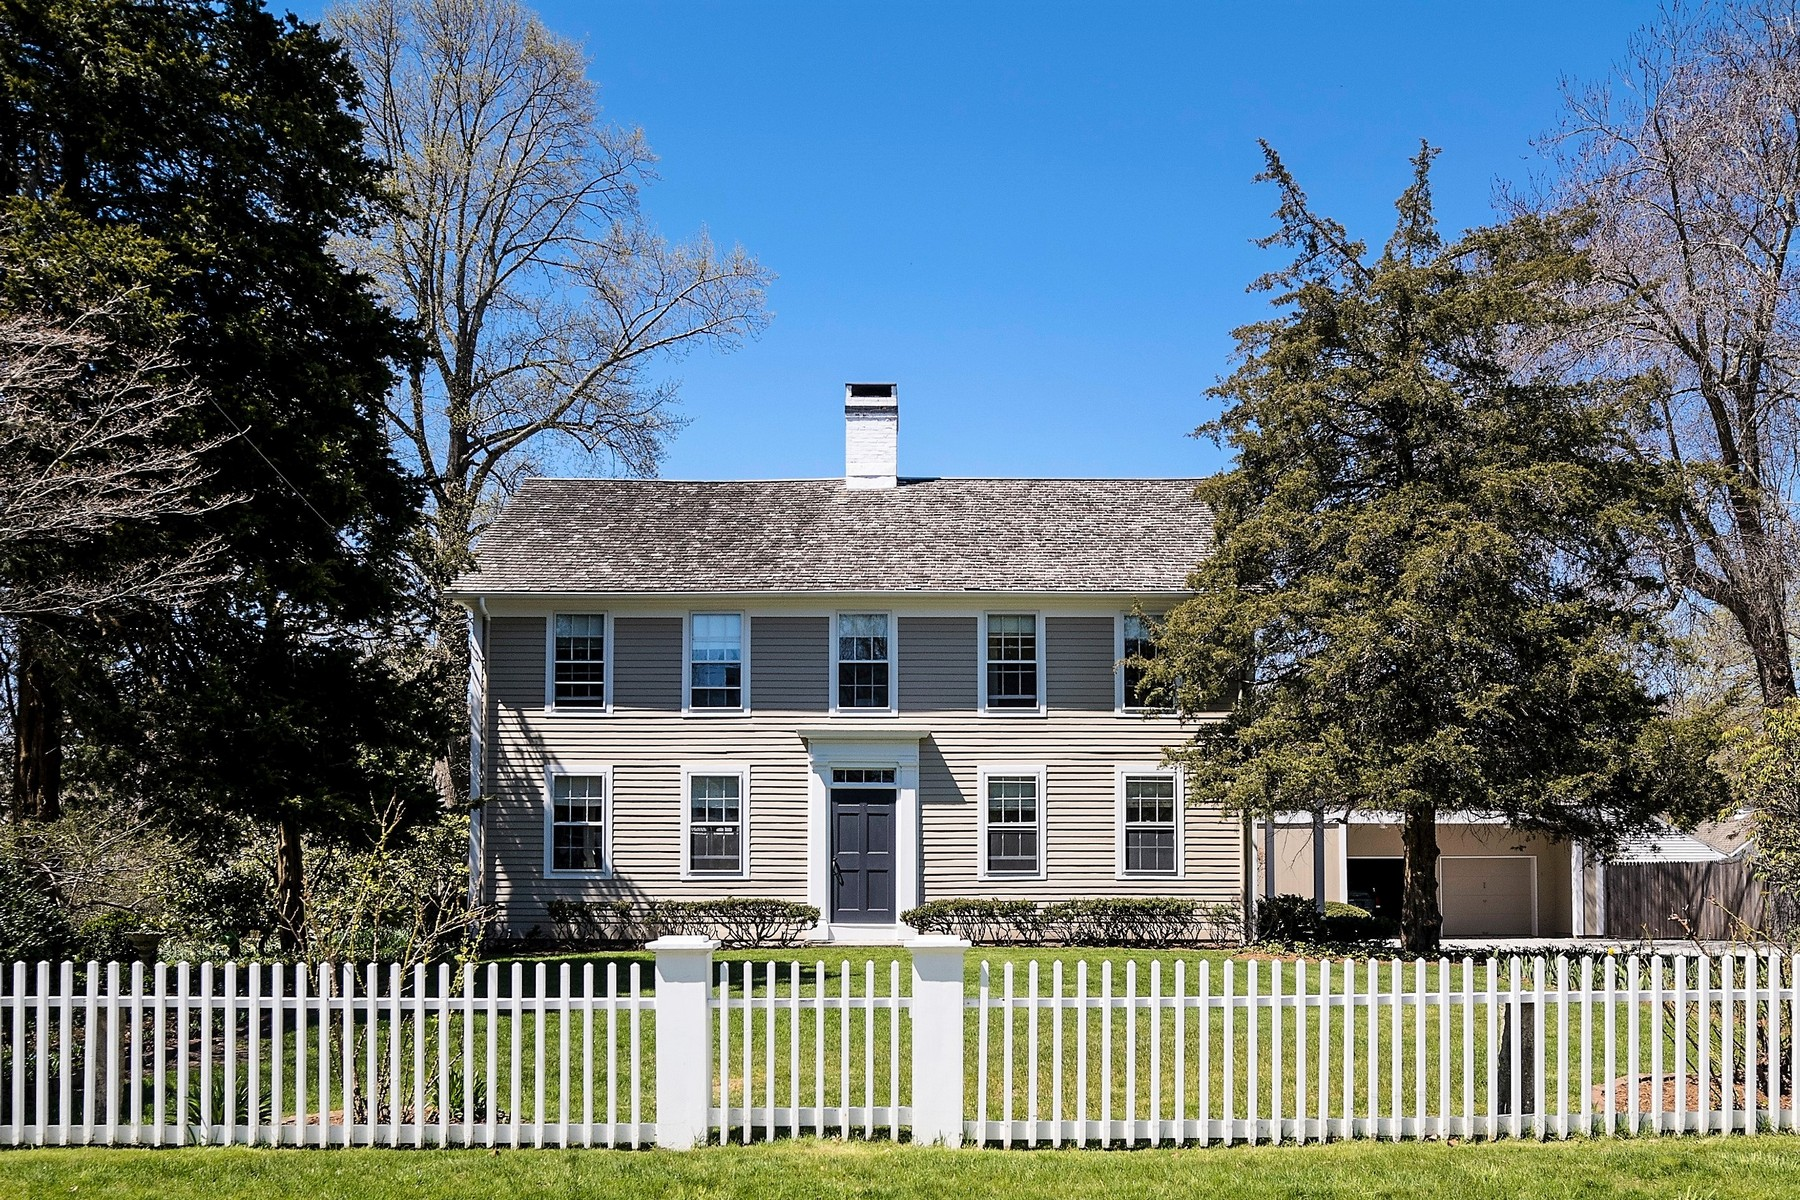 Casa Unifamiliar por un Venta en Prominent and Stunning Vintage Home 6 Lyme Street Old Lyme, Connecticut 06371 Estados Unidos